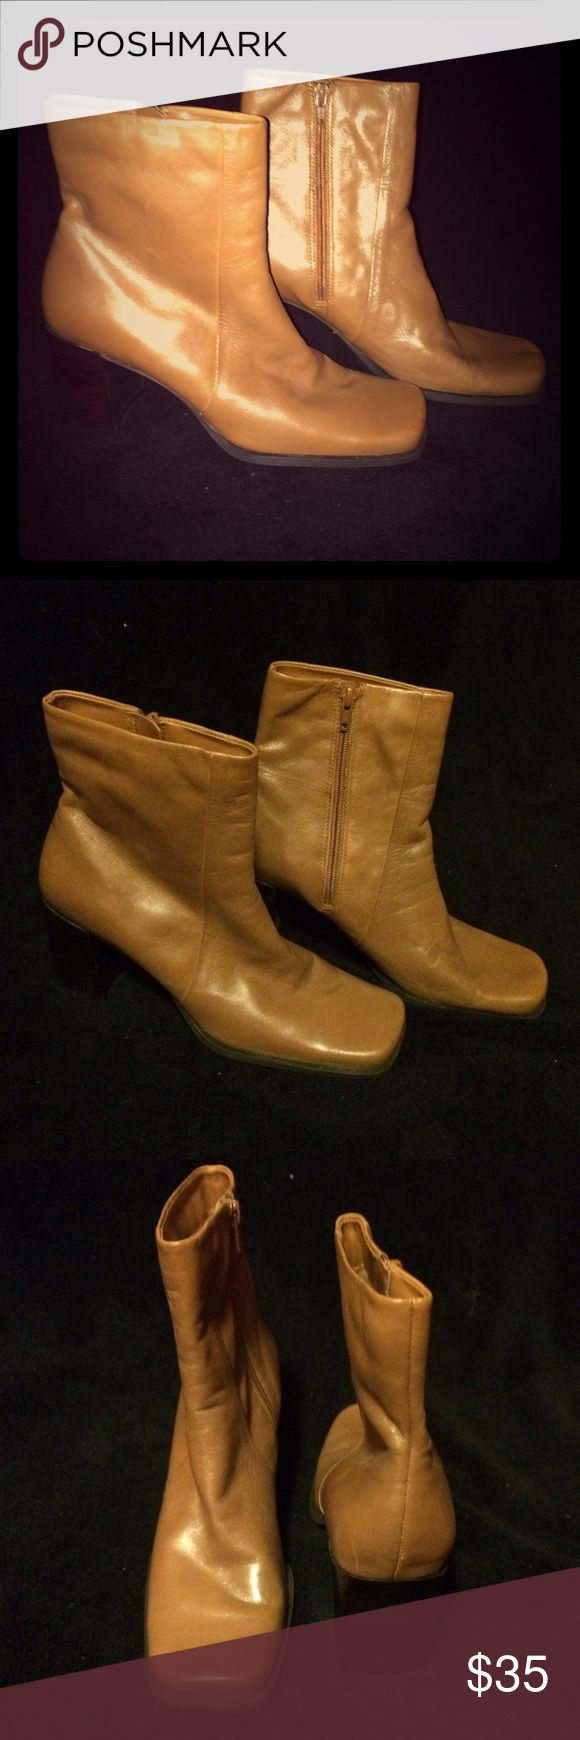 Nine & Co. Tan Leather Ankle Boots Brand new. Never worn. Nine & Company Shoes Ankle Boots & Booties